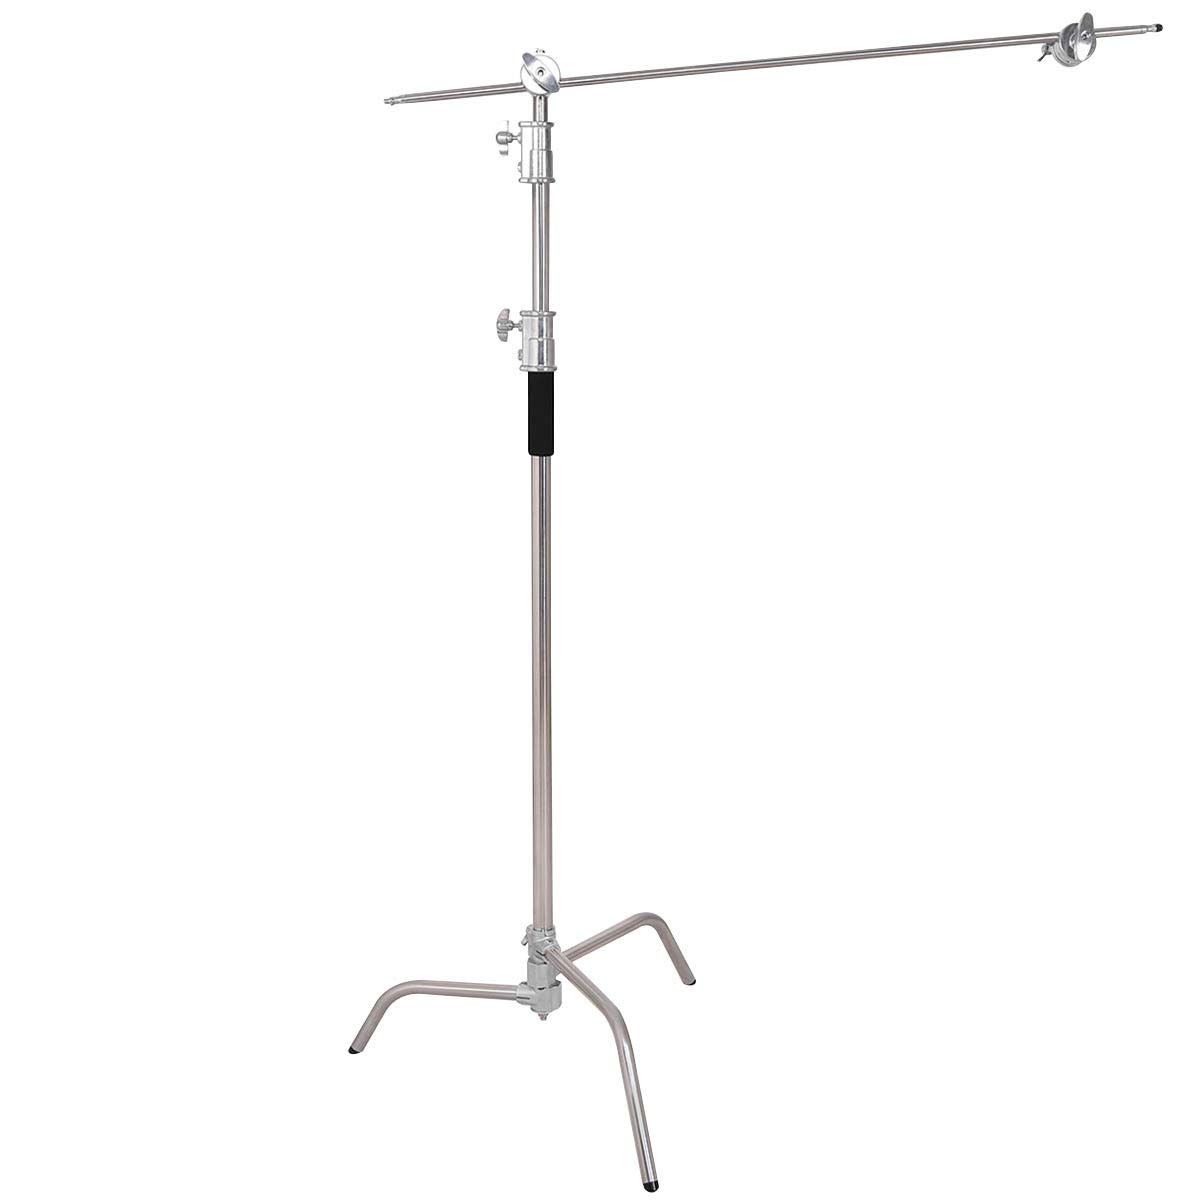 KCHEX>>>40'' Stainless Steel Silver C-stand w Grip Head Folding Legs Photography Studio>Used on its own or in combination with a grip head and grip arm, the C-Stand is used for mounting lighting equipm